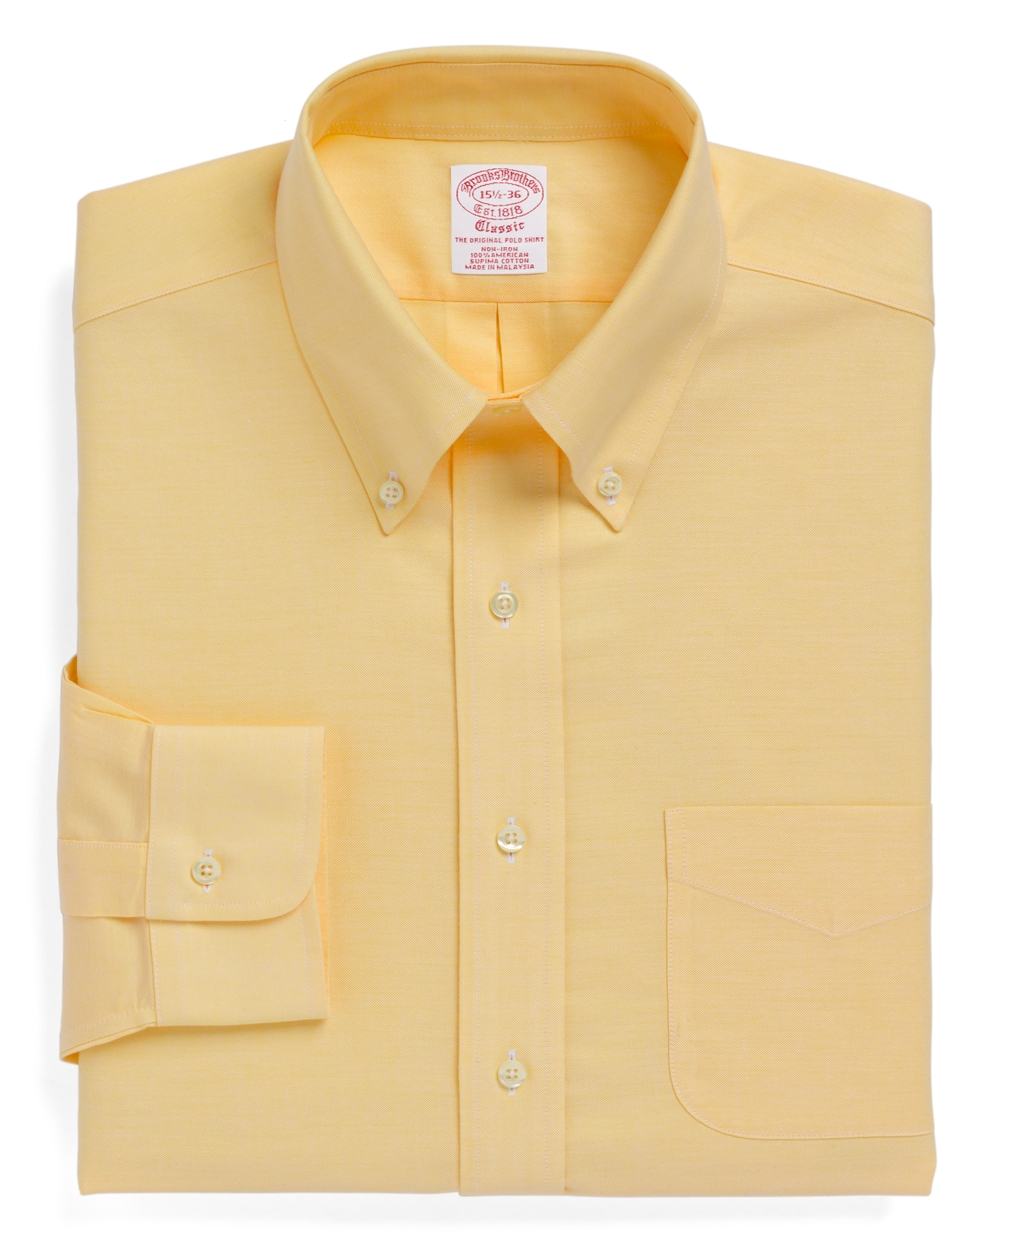 Brooks brothers non iron milano fit brookscool button Brooks brothers shirt size guide